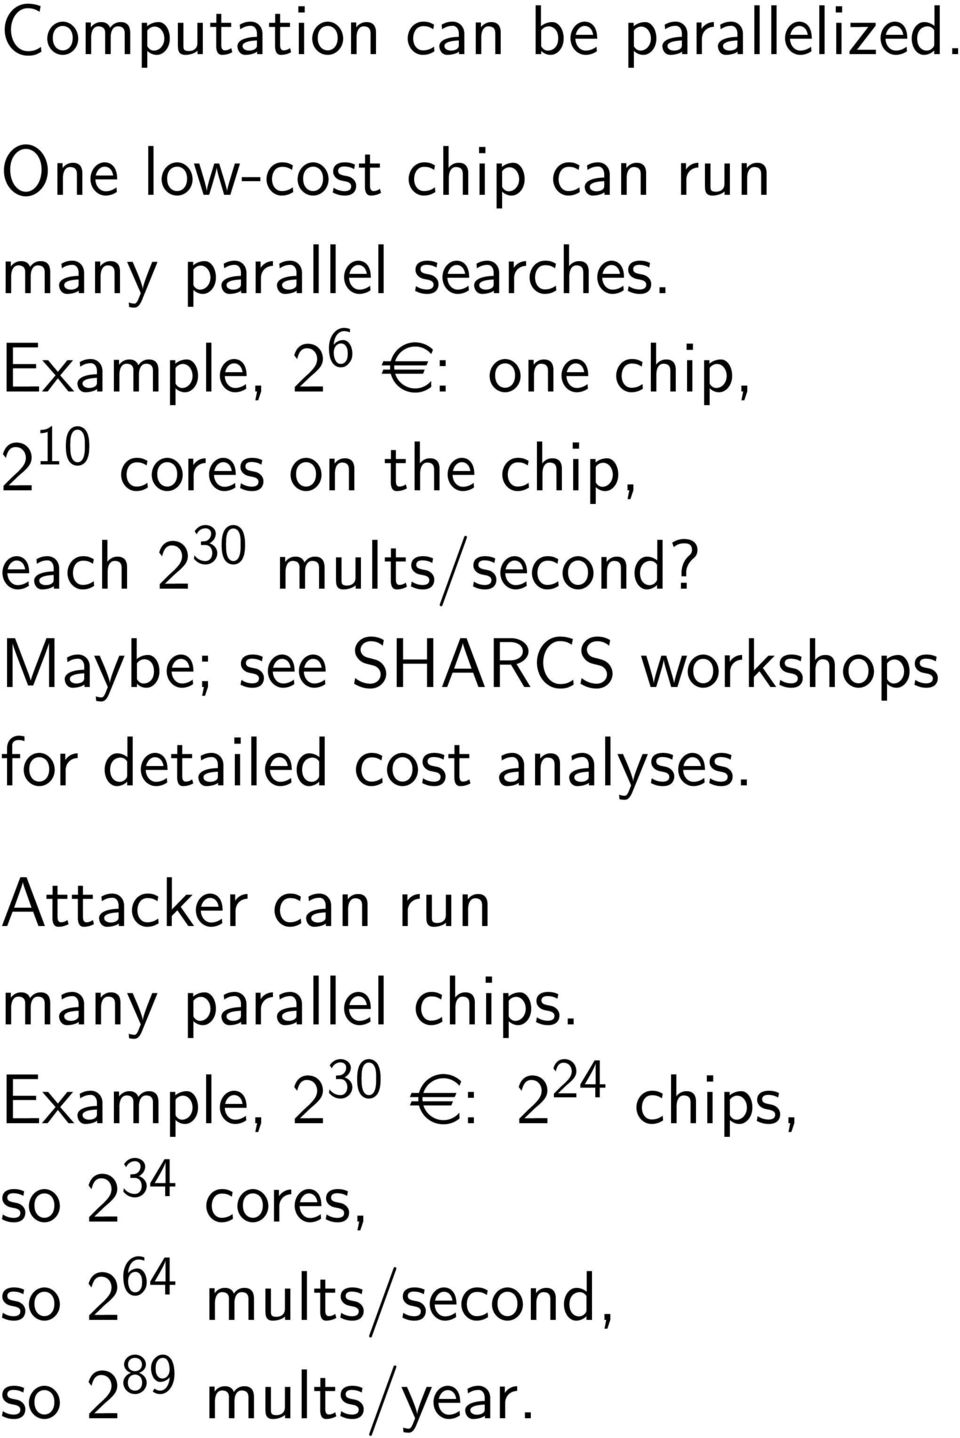 Maybe; see SHARCS workshops for detailed cost analyses.